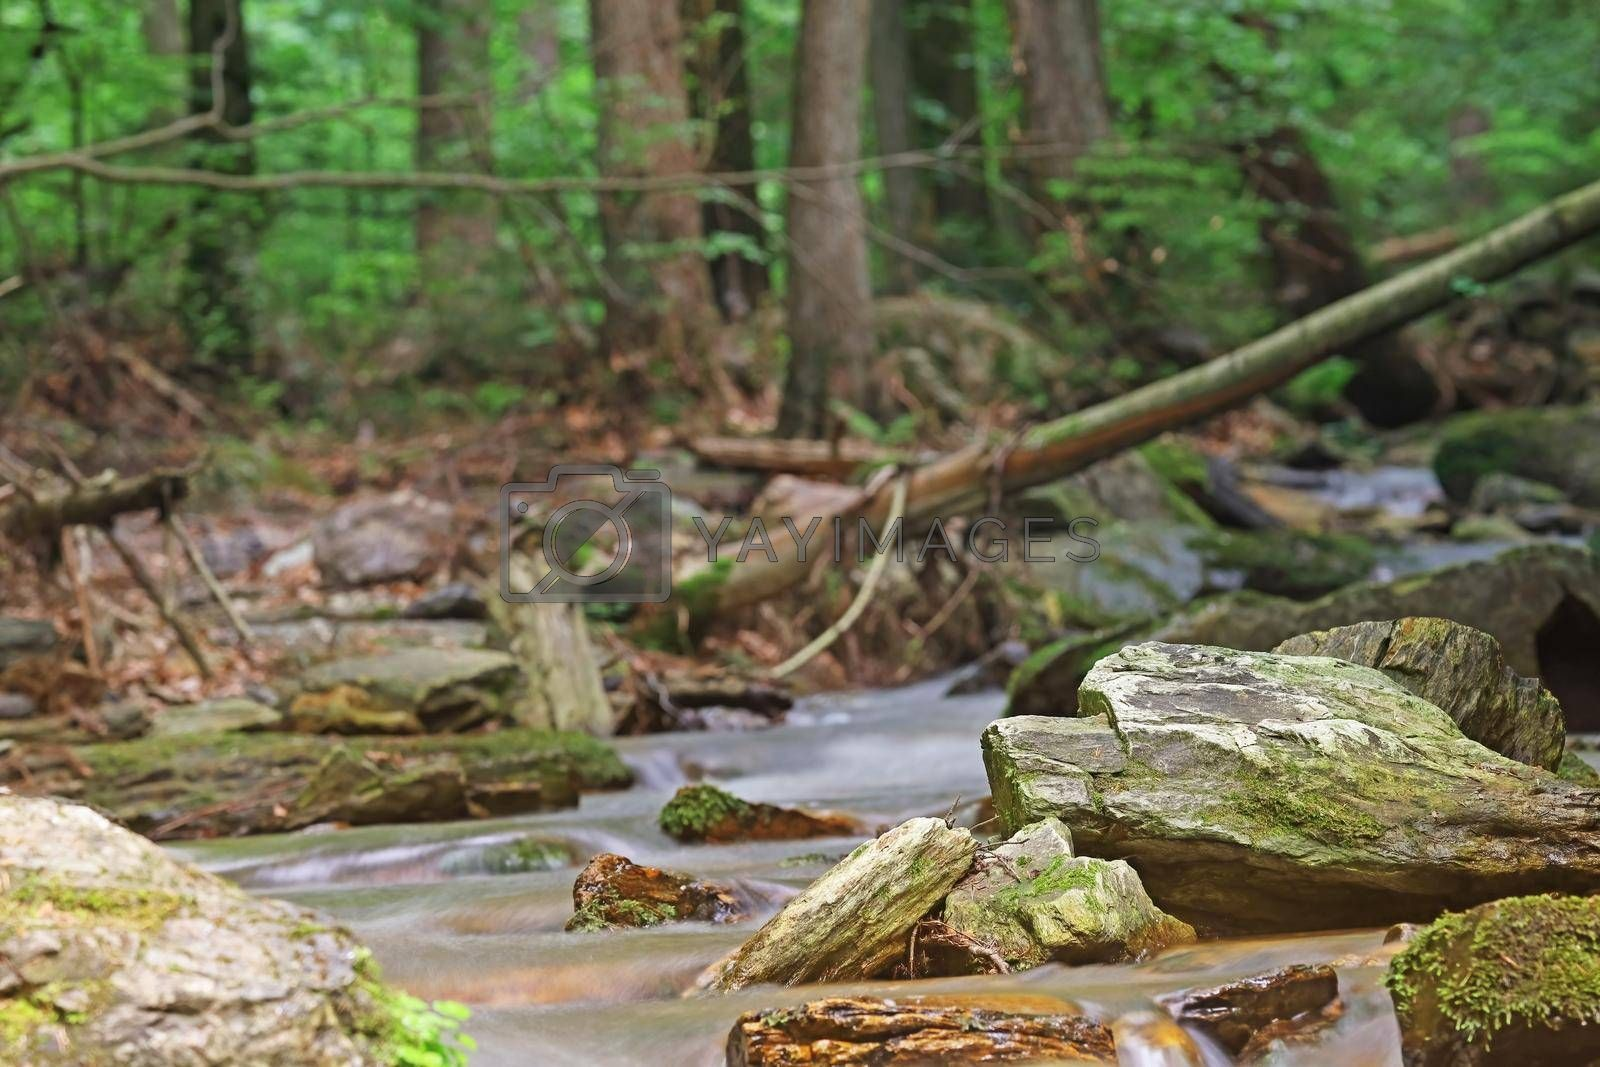 Royalty free image of Silky effect of cascades of running water in a brook by Frank11